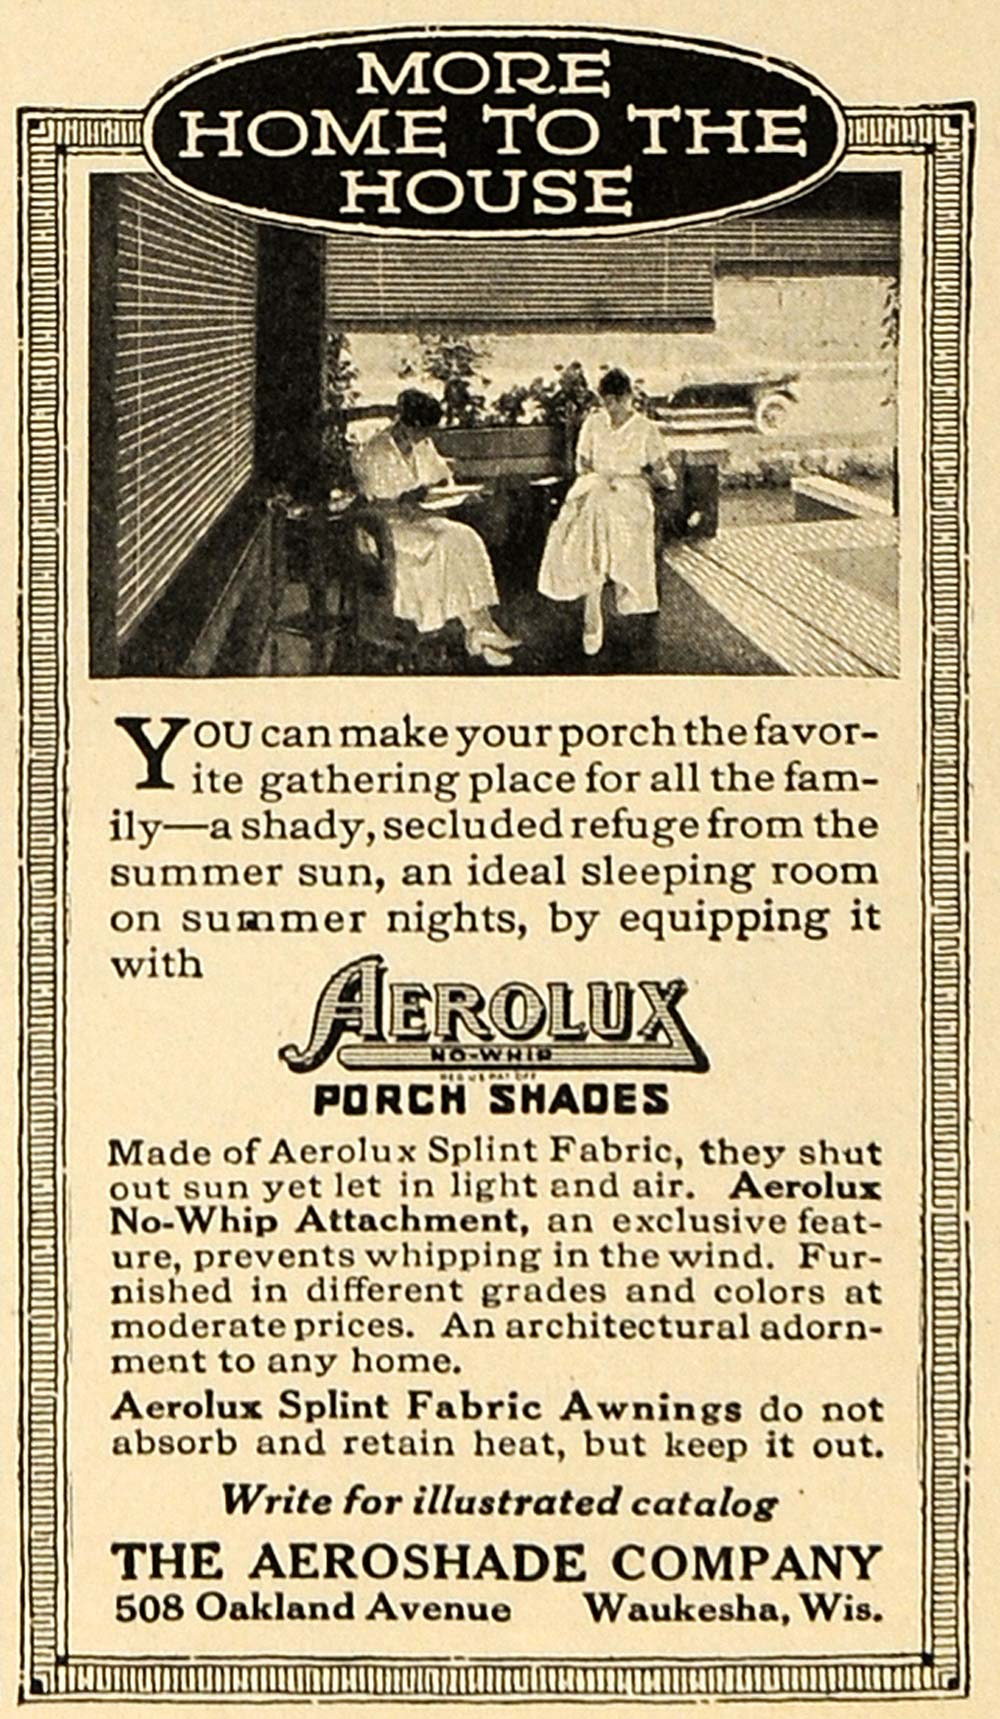 1916 Ad Aeroshade Waukesha Porch Shade Home Fabric - ORIGINAL ADVERTISING TIN2